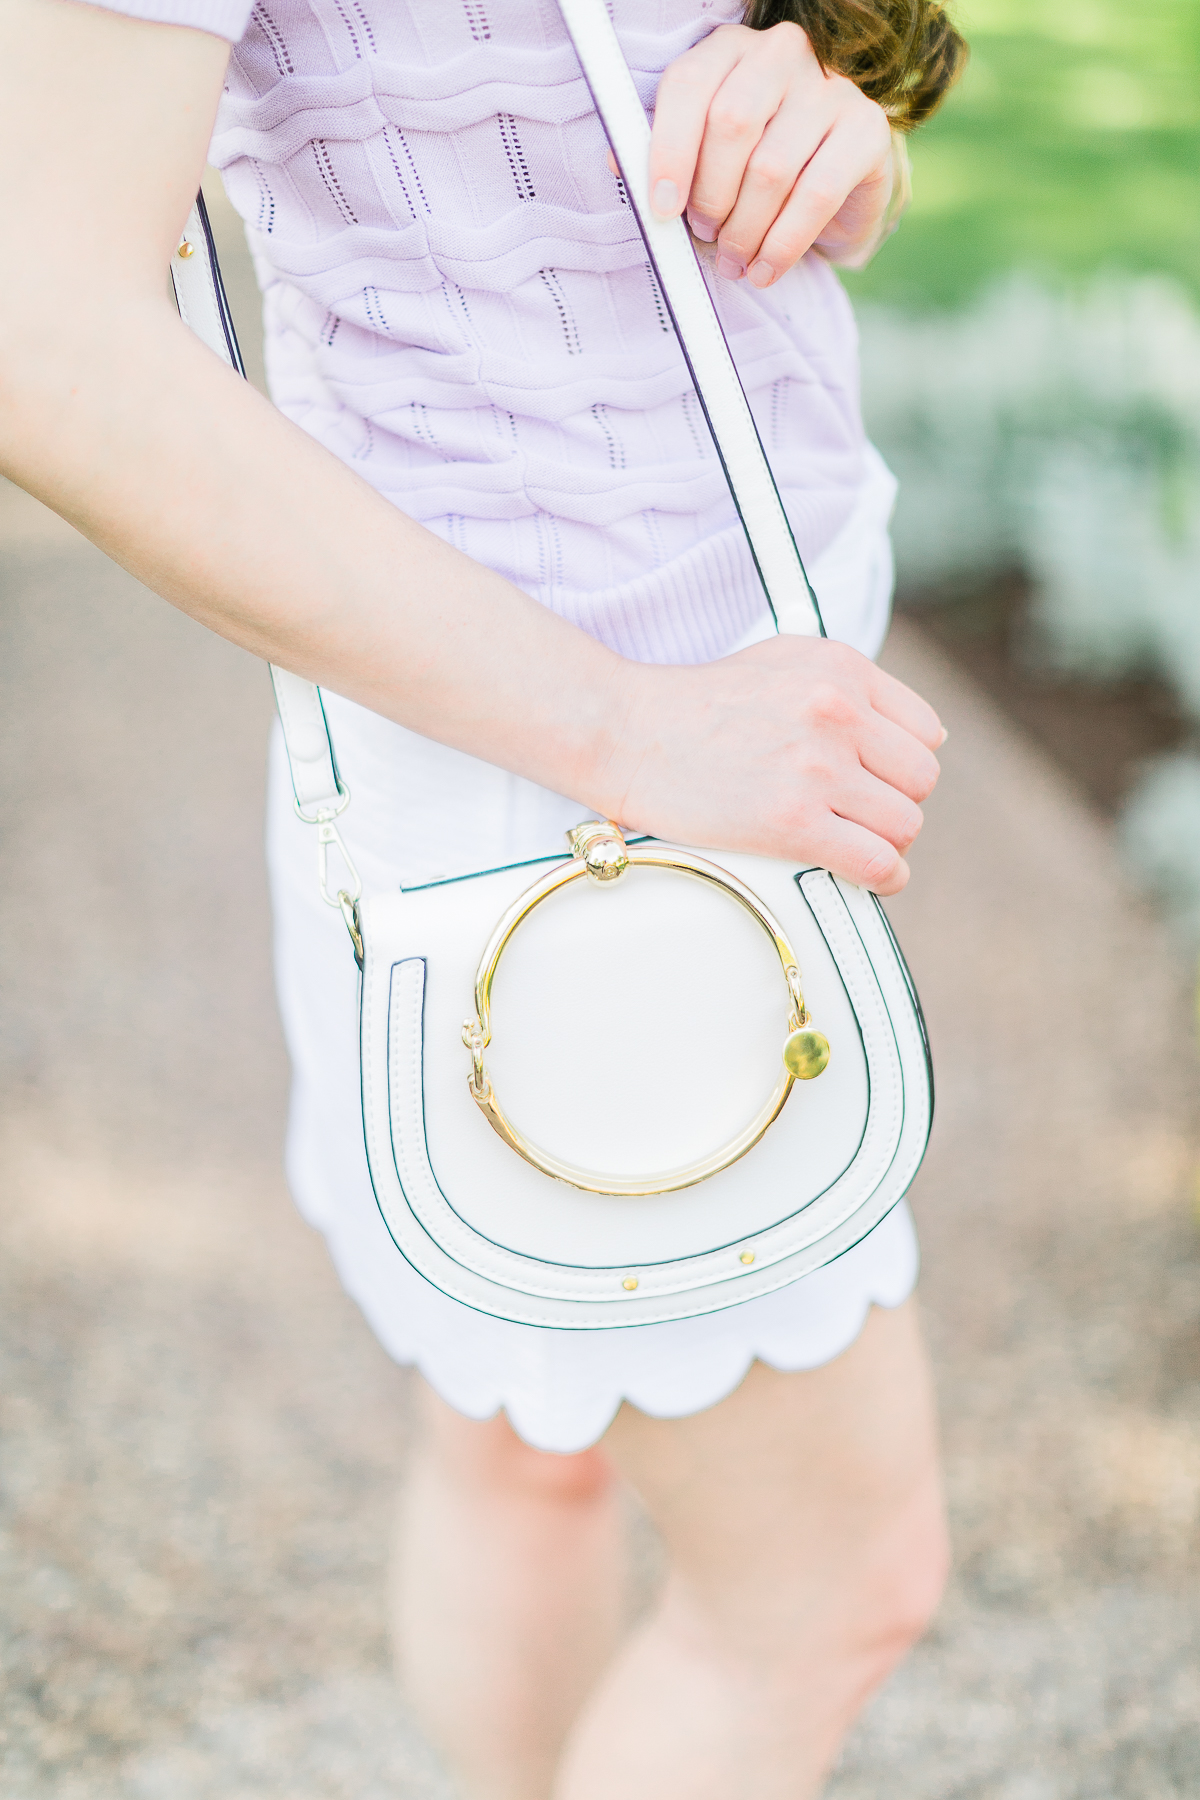 How to wear a short sleeve sweater in the spring by southern fashion blogger Stephanie Ziajka from Diary of a Debutante, lilac Cable Stitch short sleeve sweater, Lilly Pulitzer scalloped mini skirt, white Chloe Nile dupe bag, Chloe dupe bags, Kendra Scott mixed metal bangle set